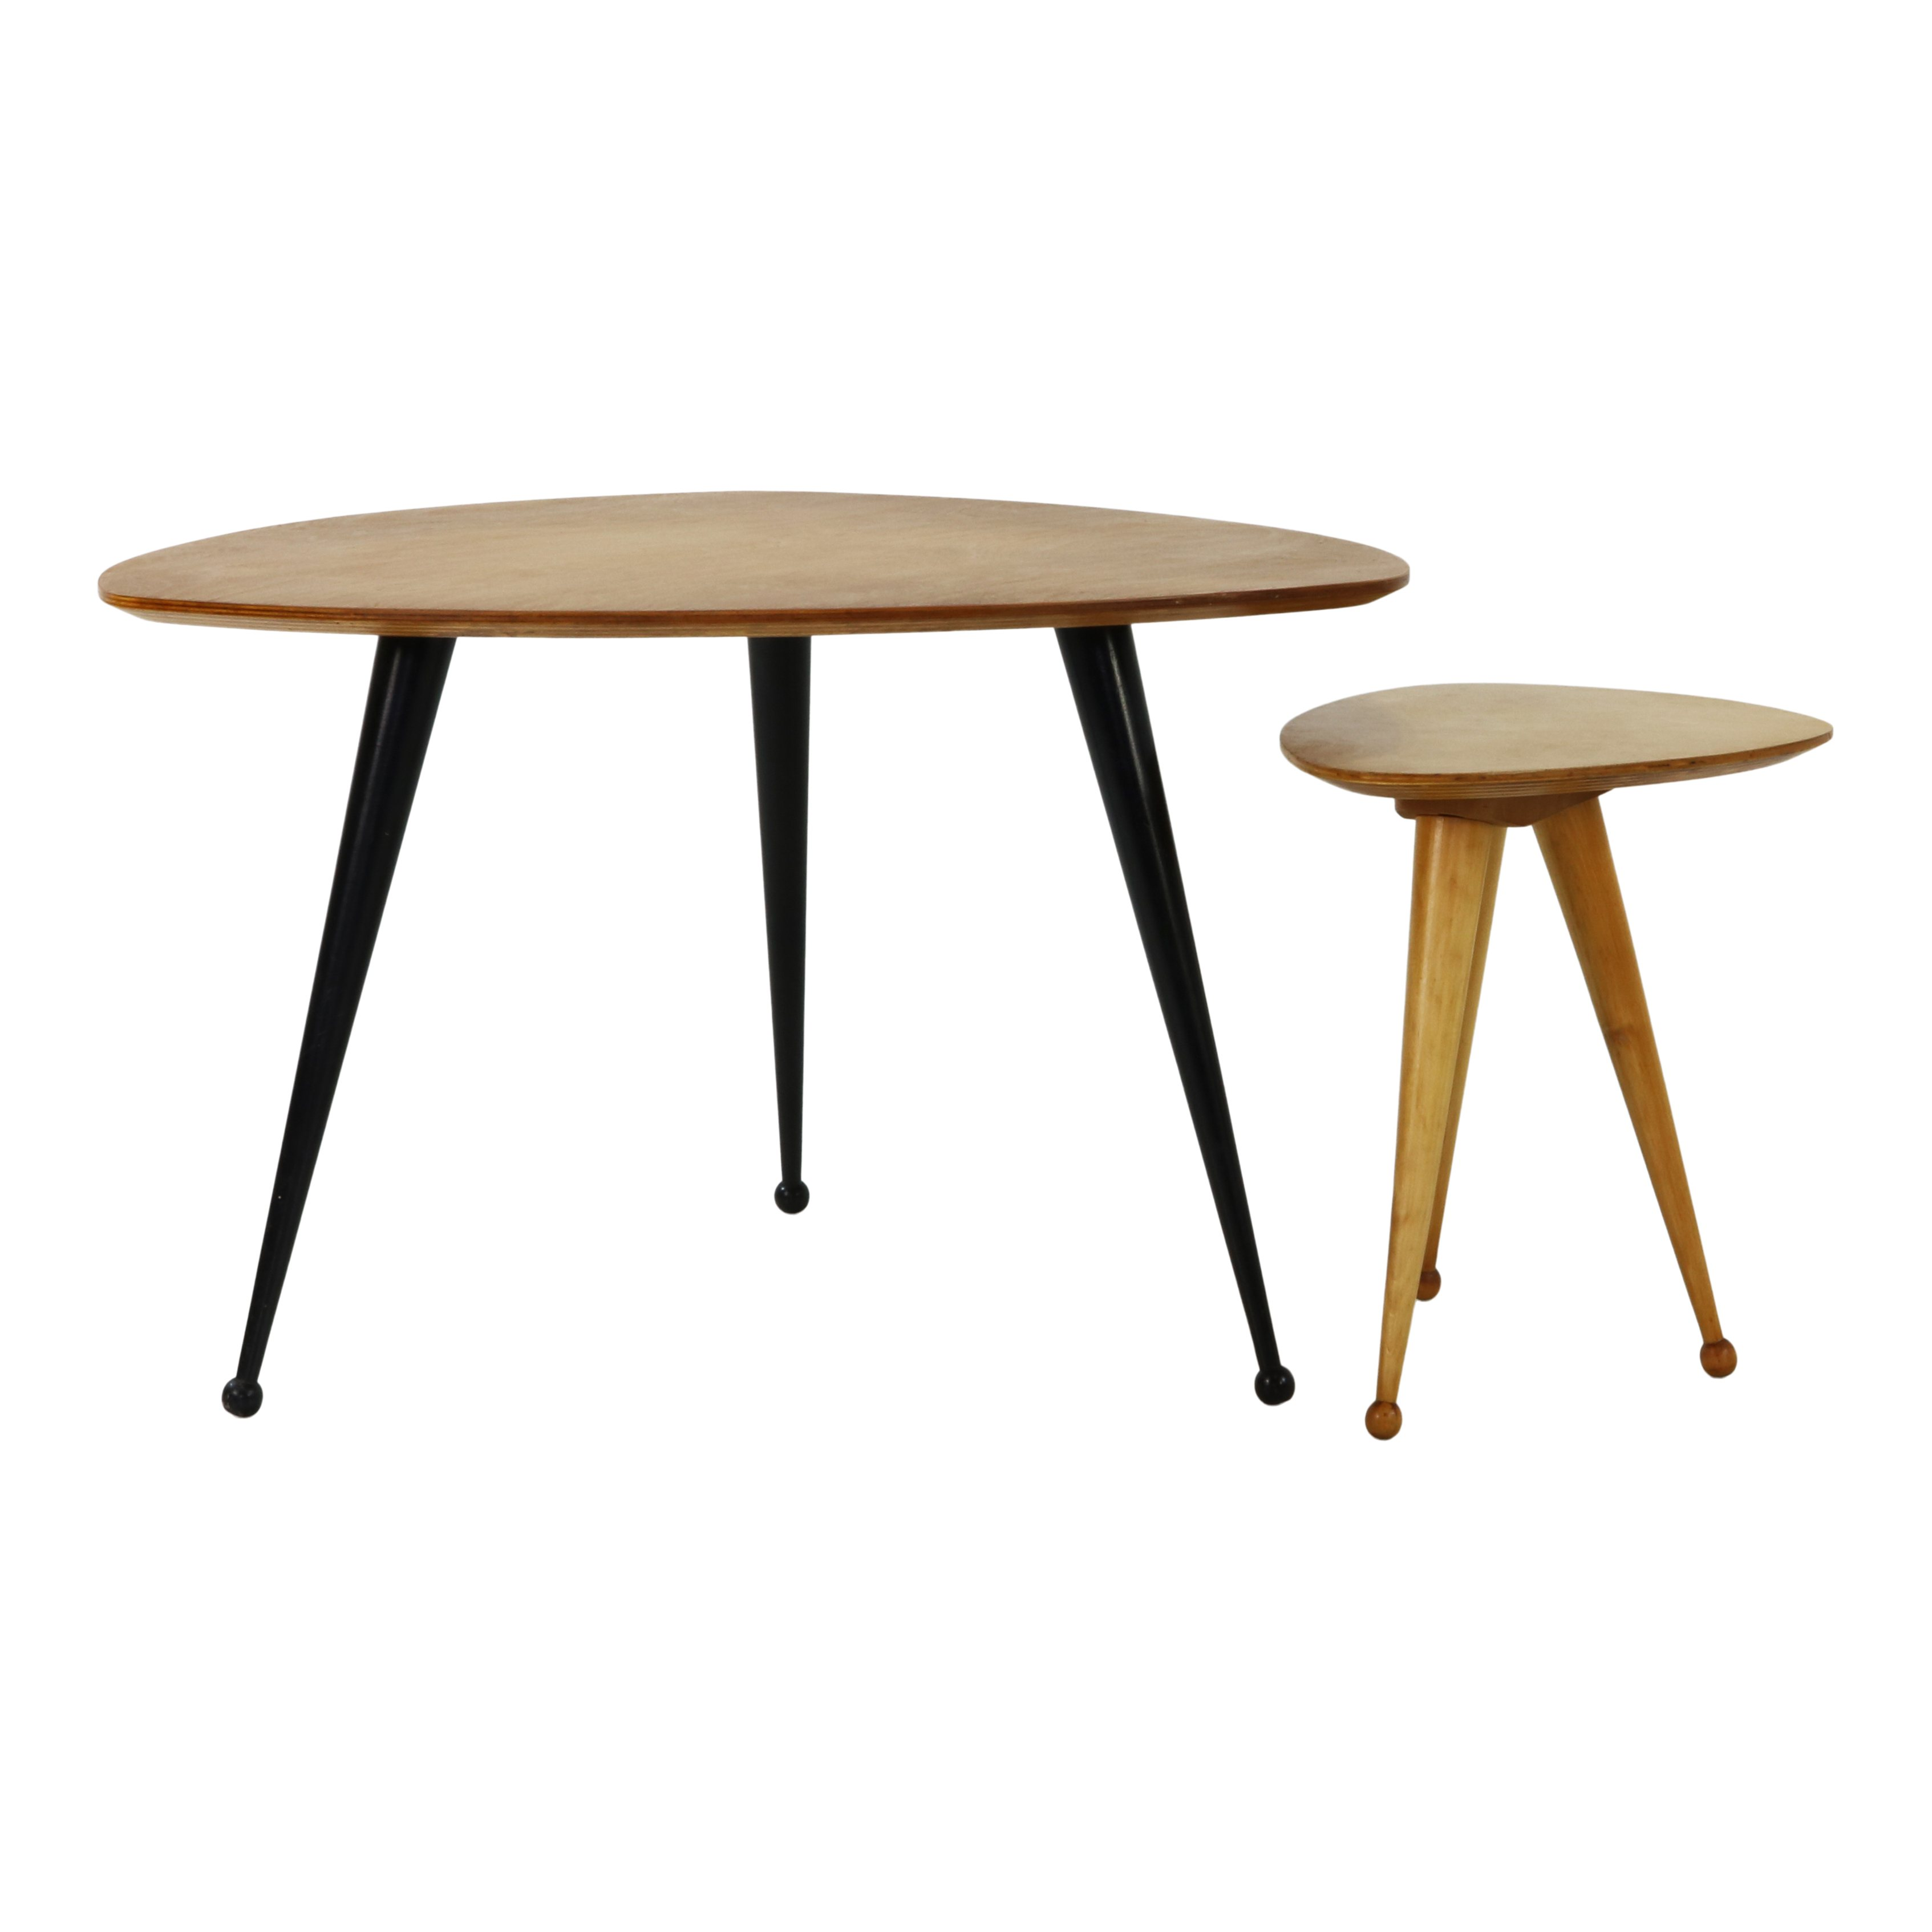 Kidney Shaped Coffee Table And Stool By Cees Braakman For Pastoe